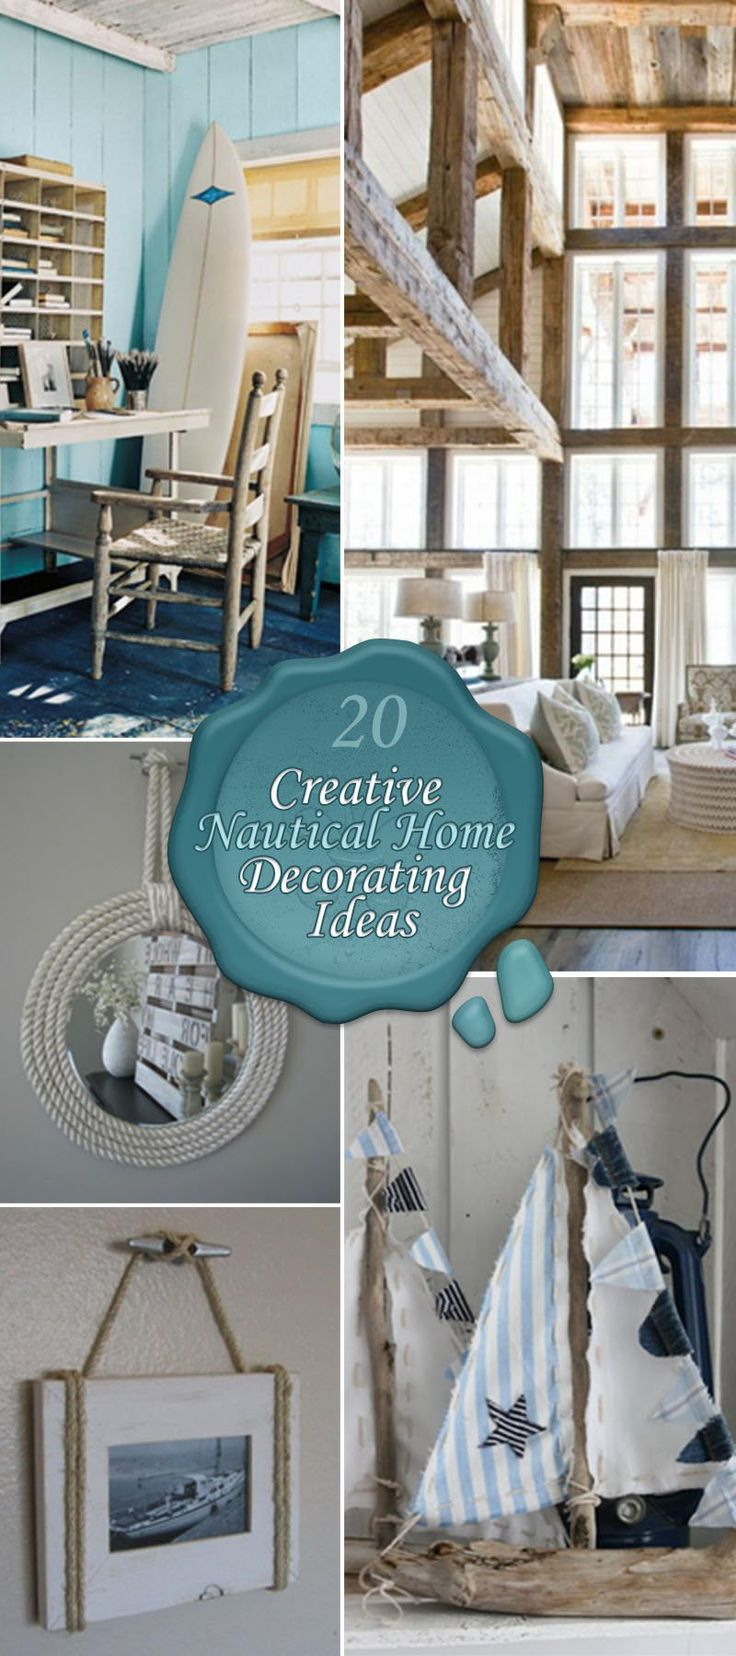 20 Very Creative Nautical Home Decorating Ideas